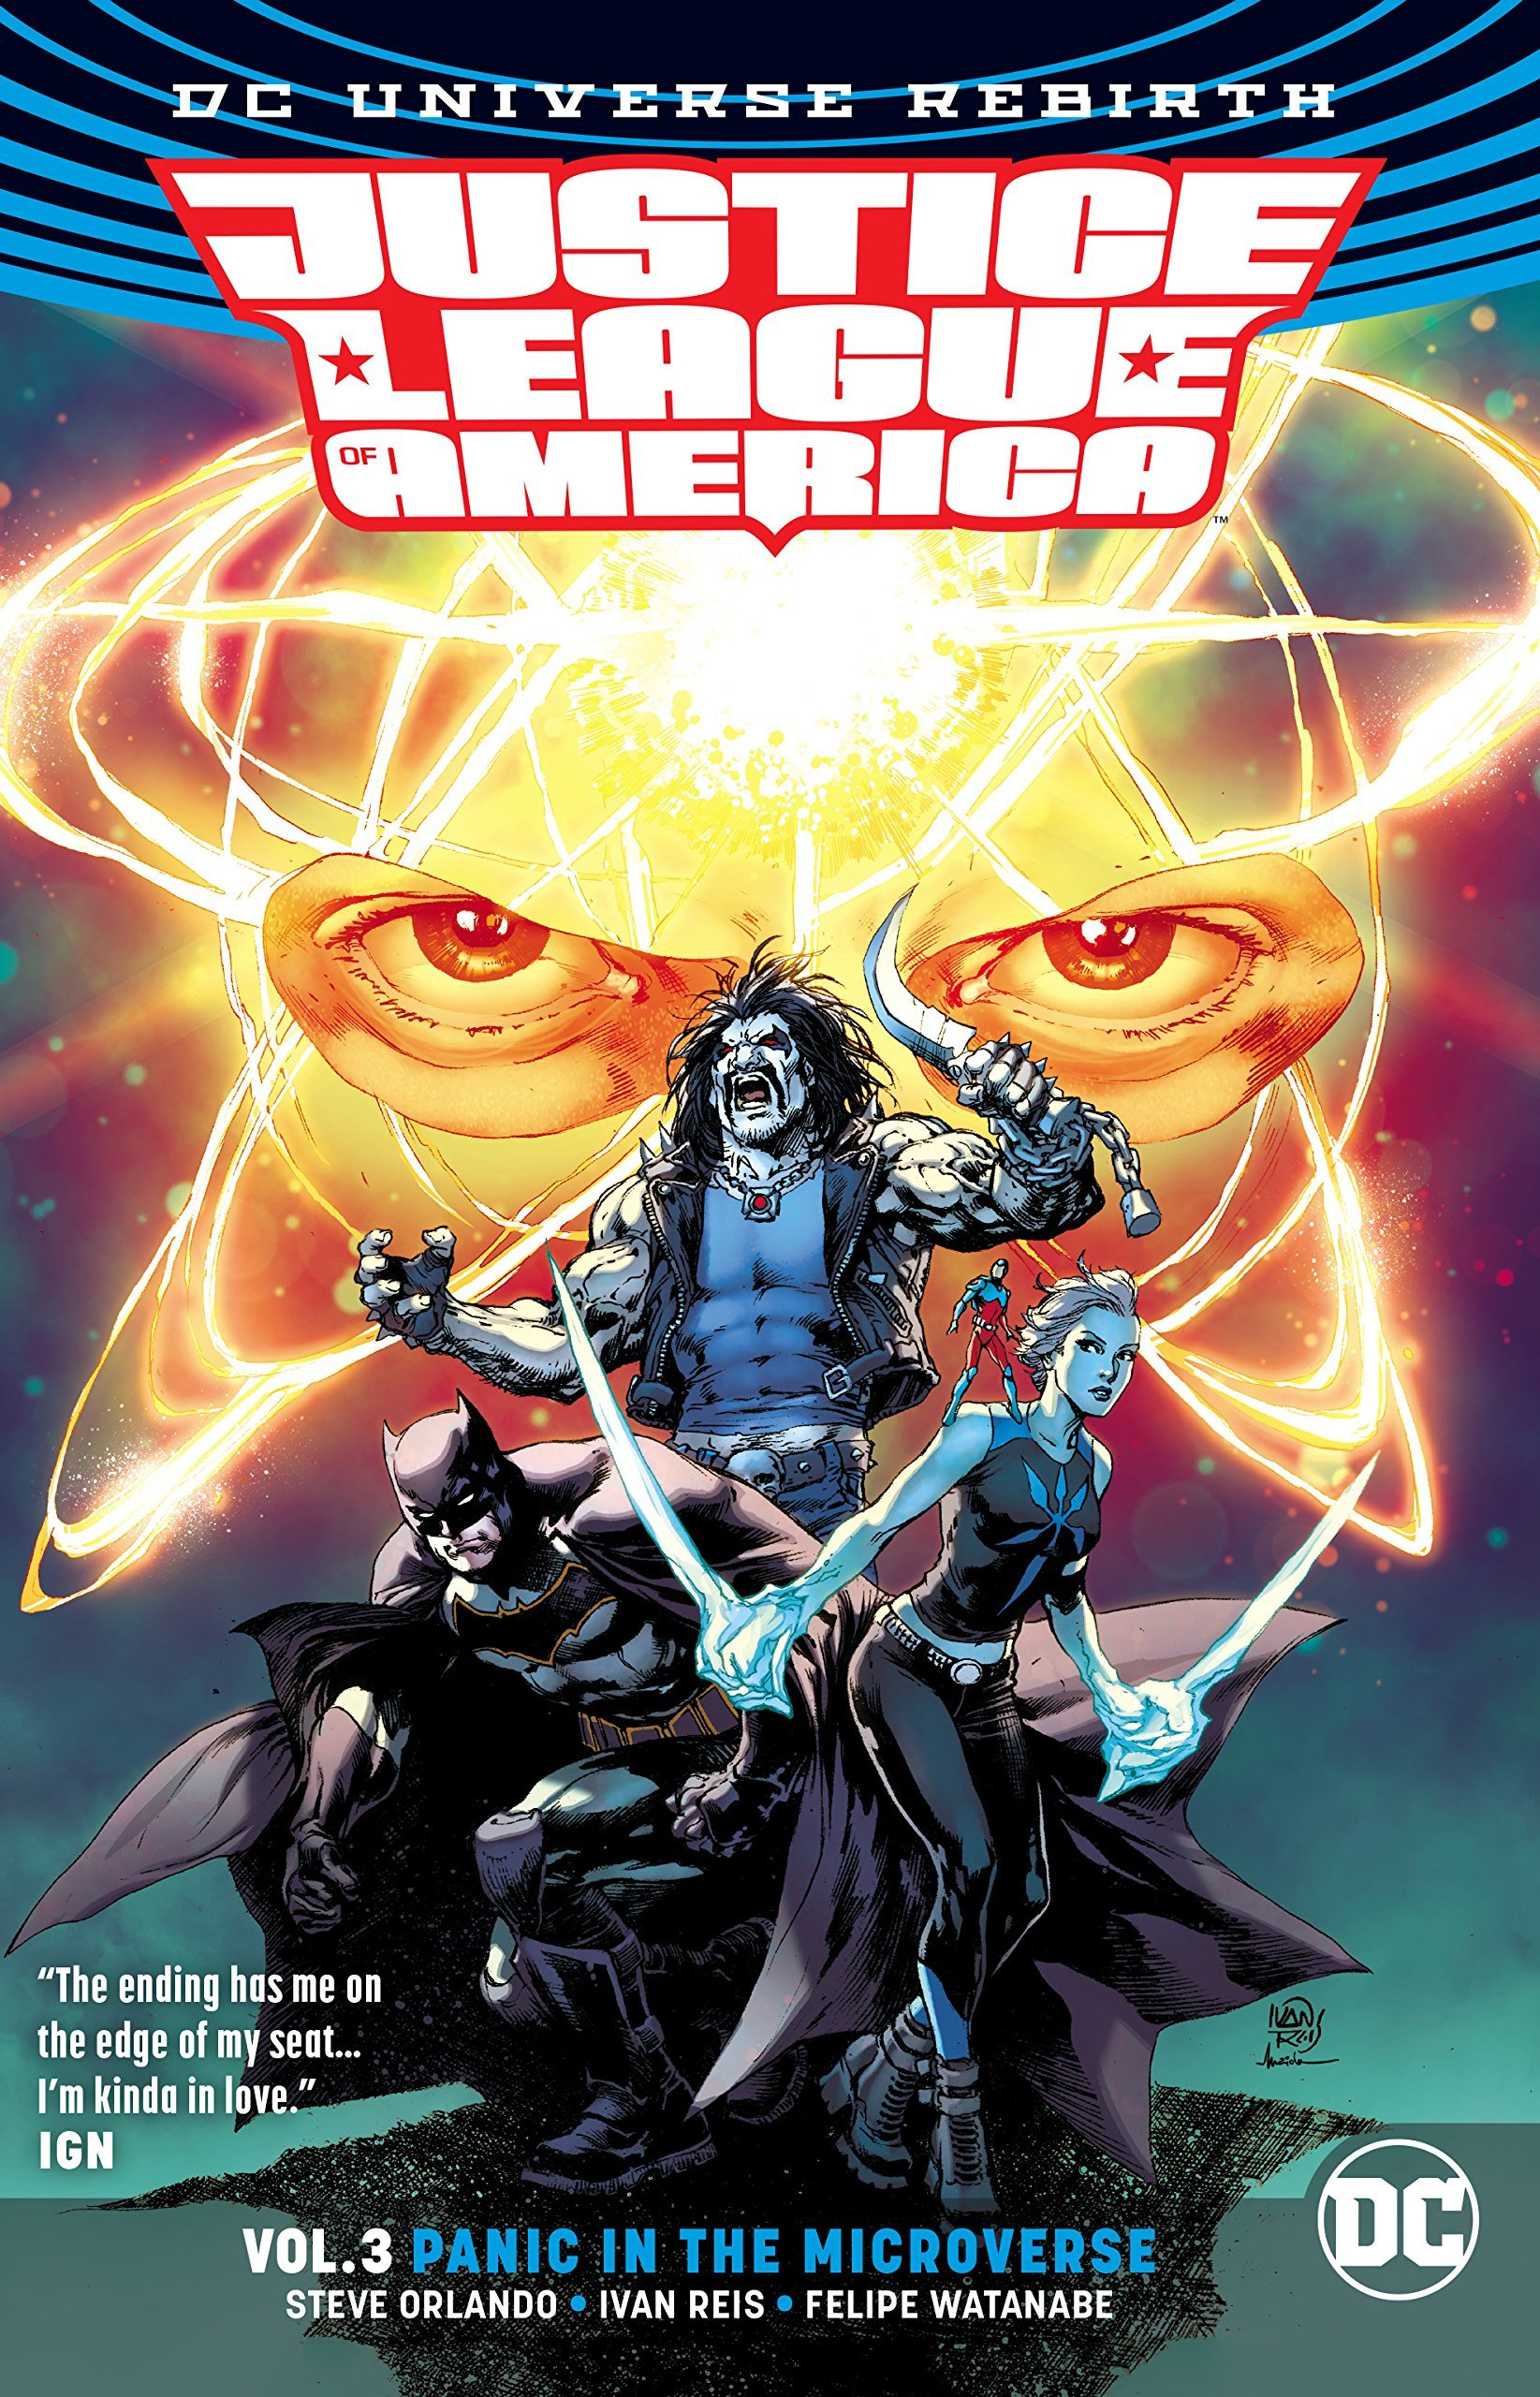 Justice League of America, Vol. 3: Panic in the Microverse